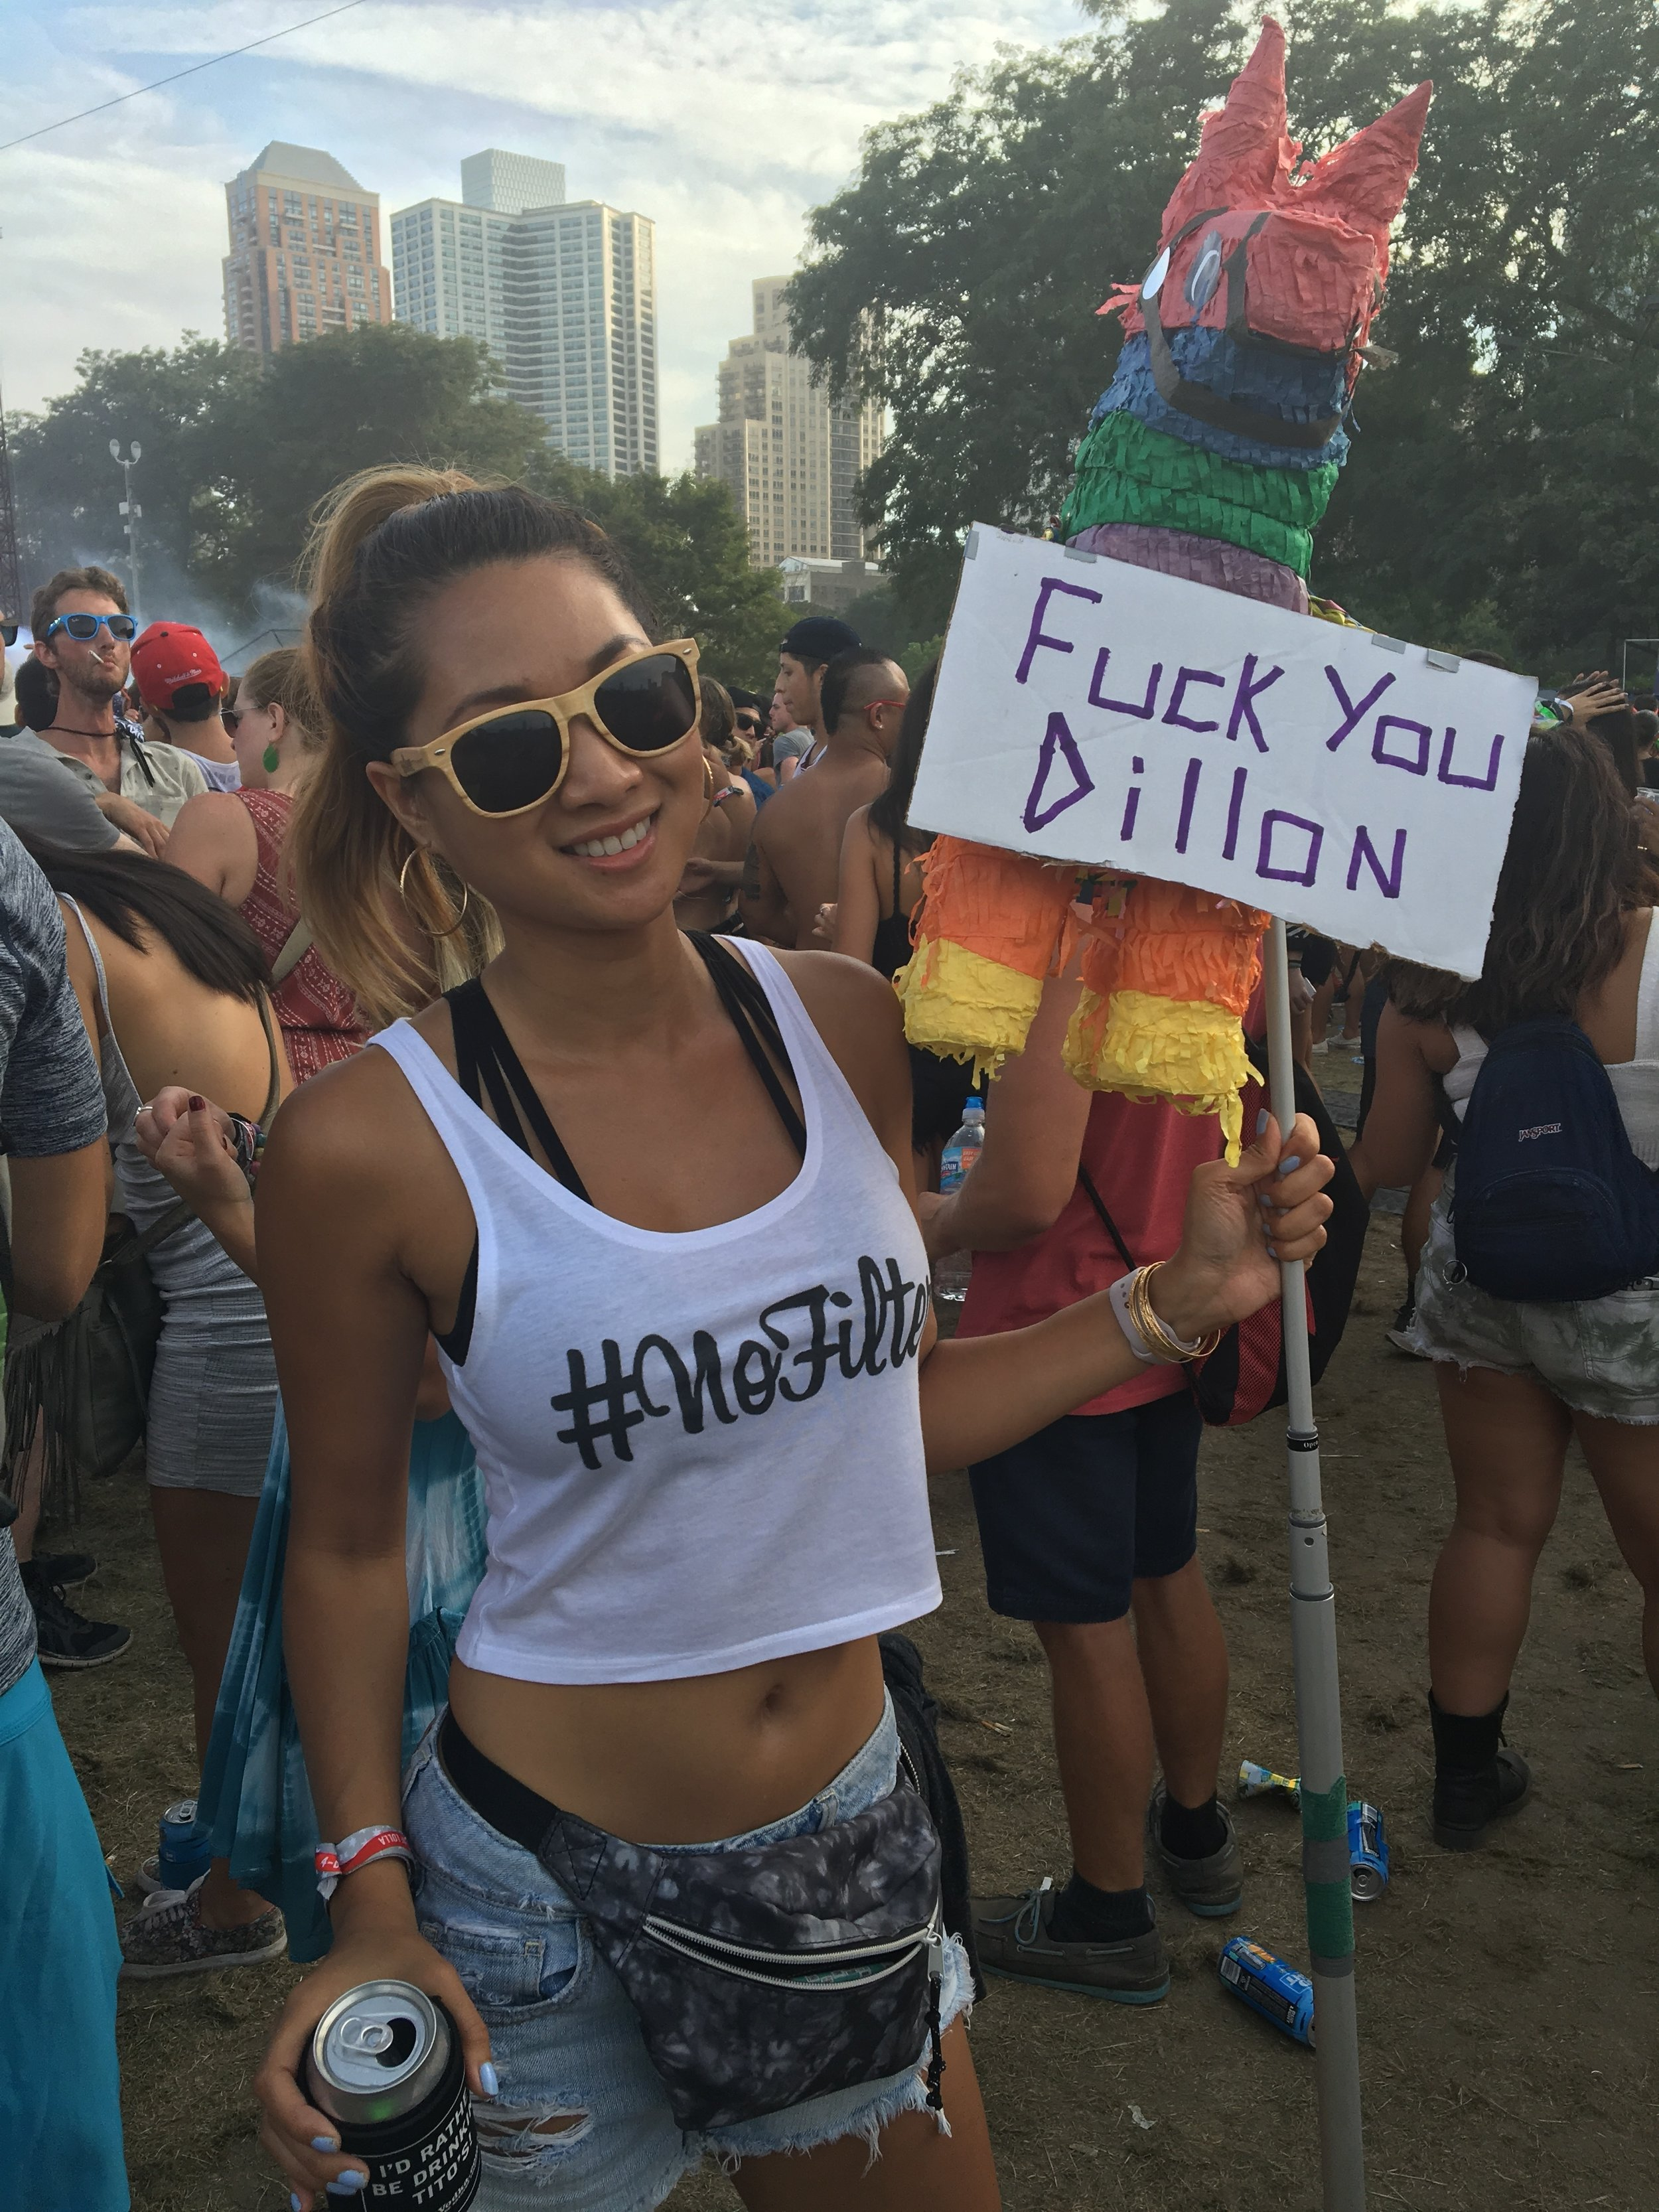 If you are a fan of Dillon Francis, you would totally understand why I love this totem so much!